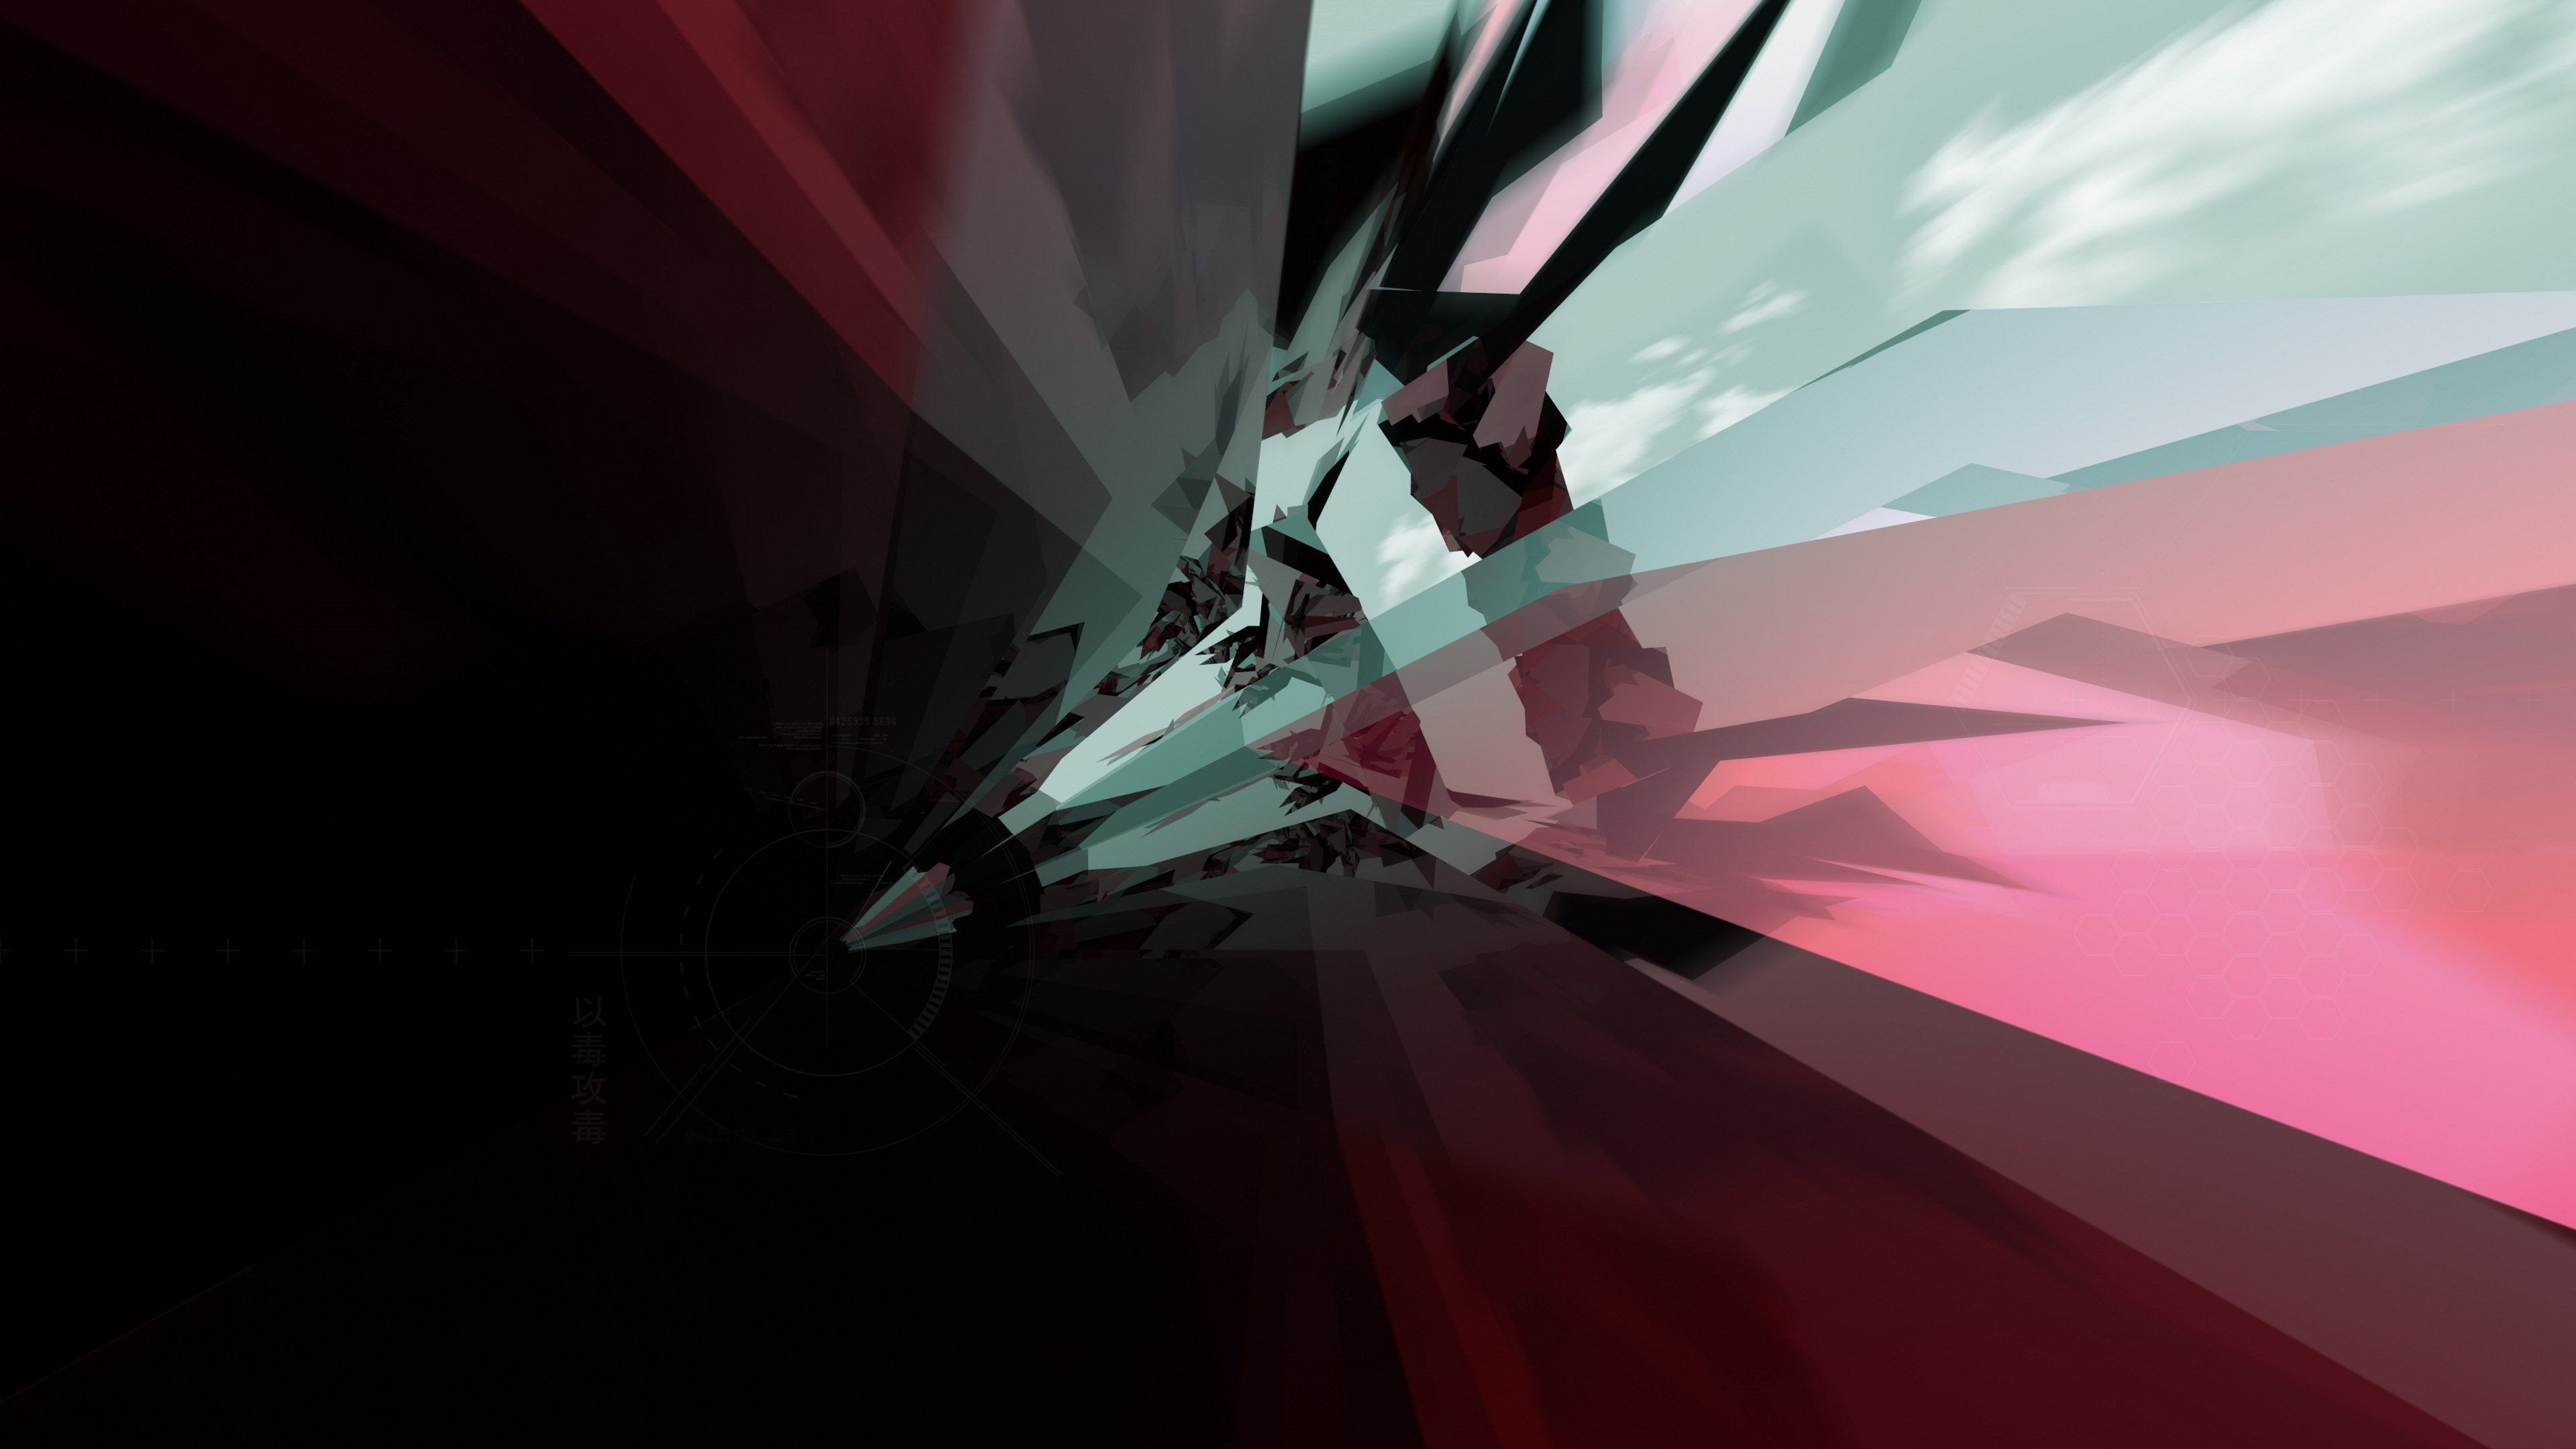 Abstract Painting 4k Hd Desktop Wallpaper For 4k Ultra Hd: 4K Abstract Wallpapers (48+ Images